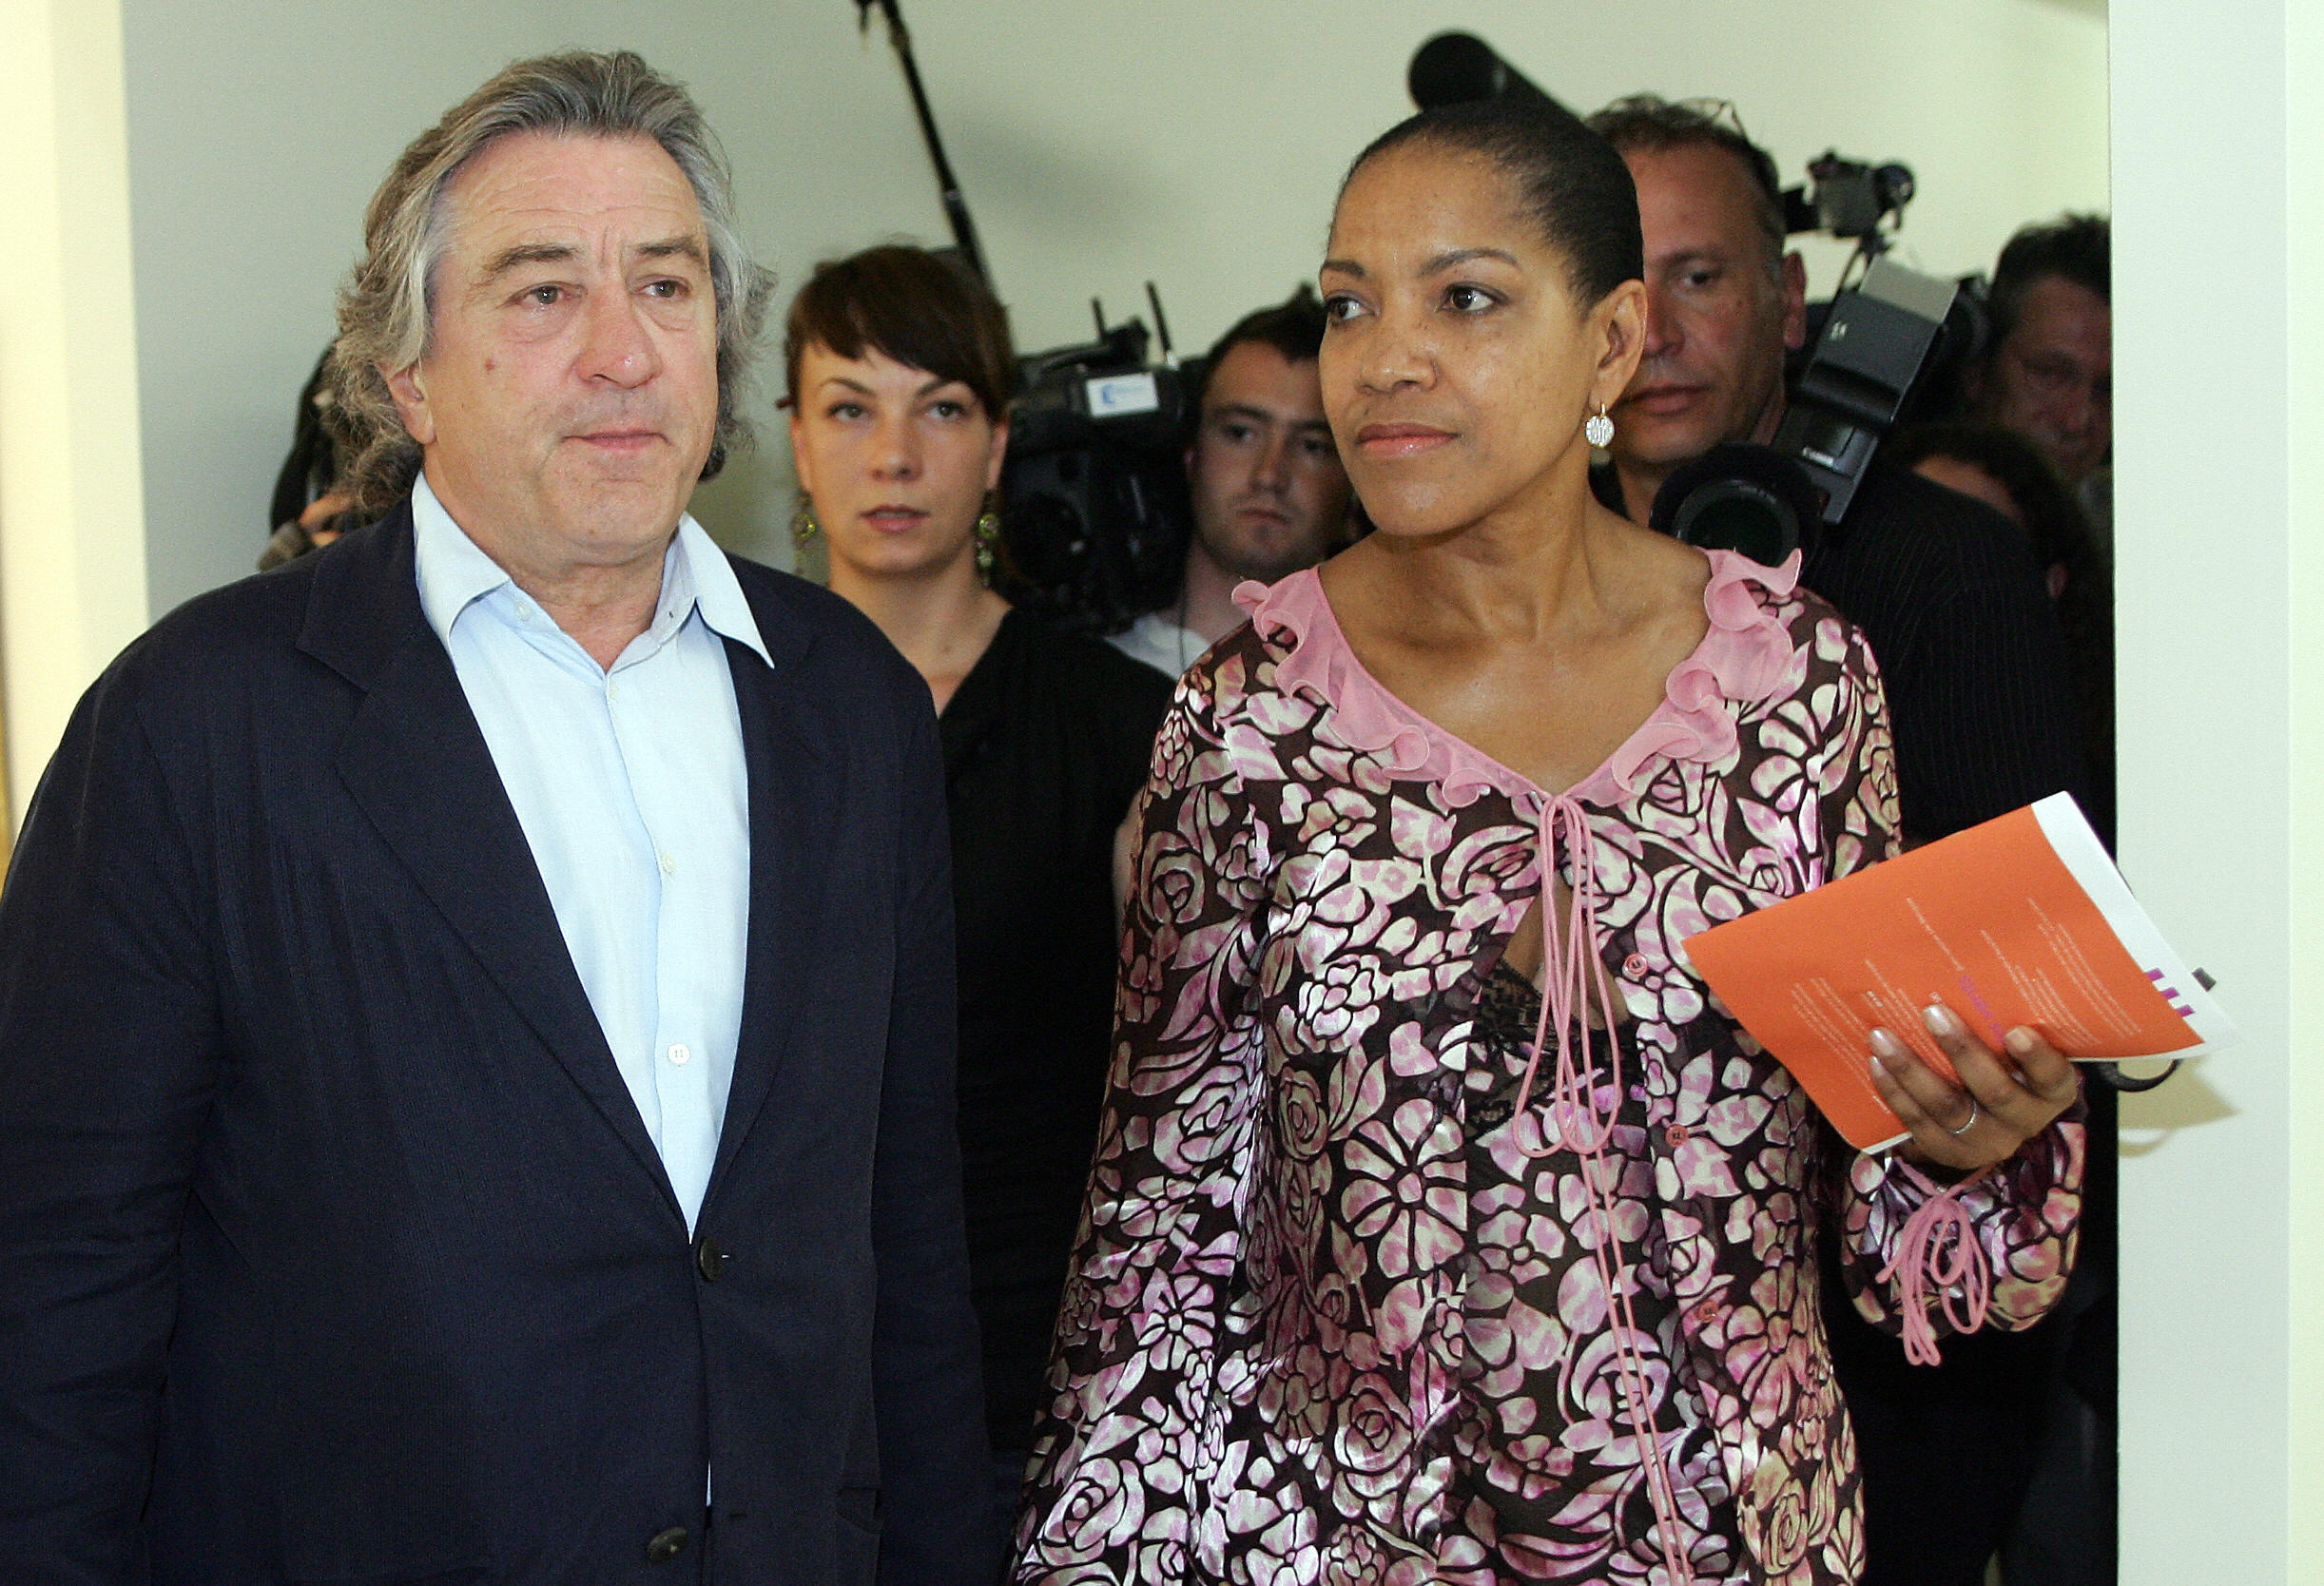 Robert De Niro and Grace Hightower in 2005.